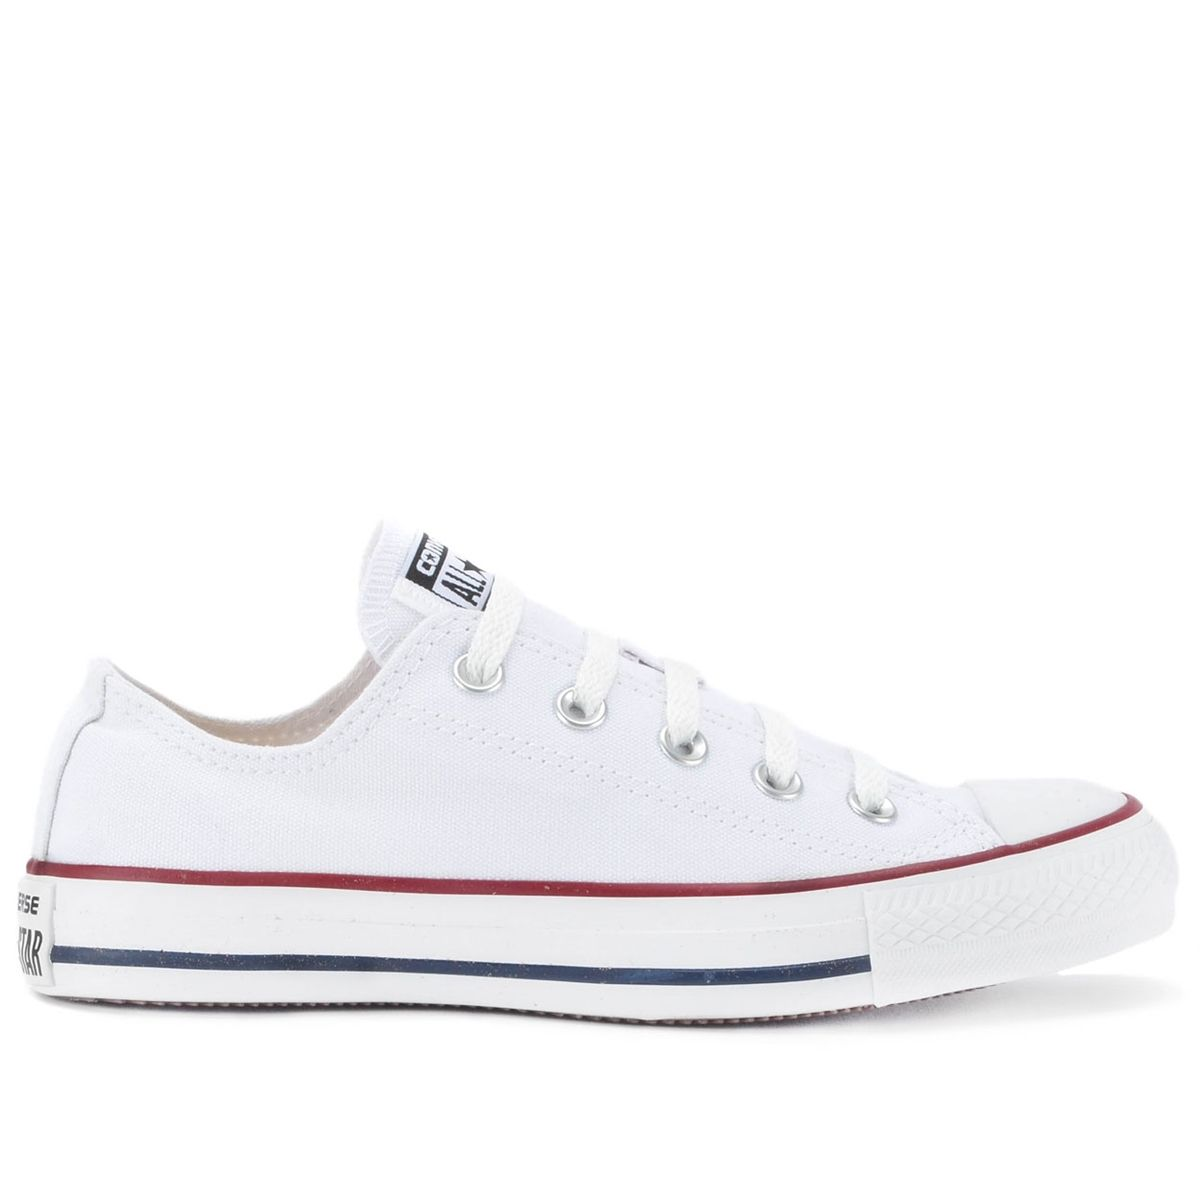 117d089637f5 wholesale converse shoes available at  http   www.eviro.org email